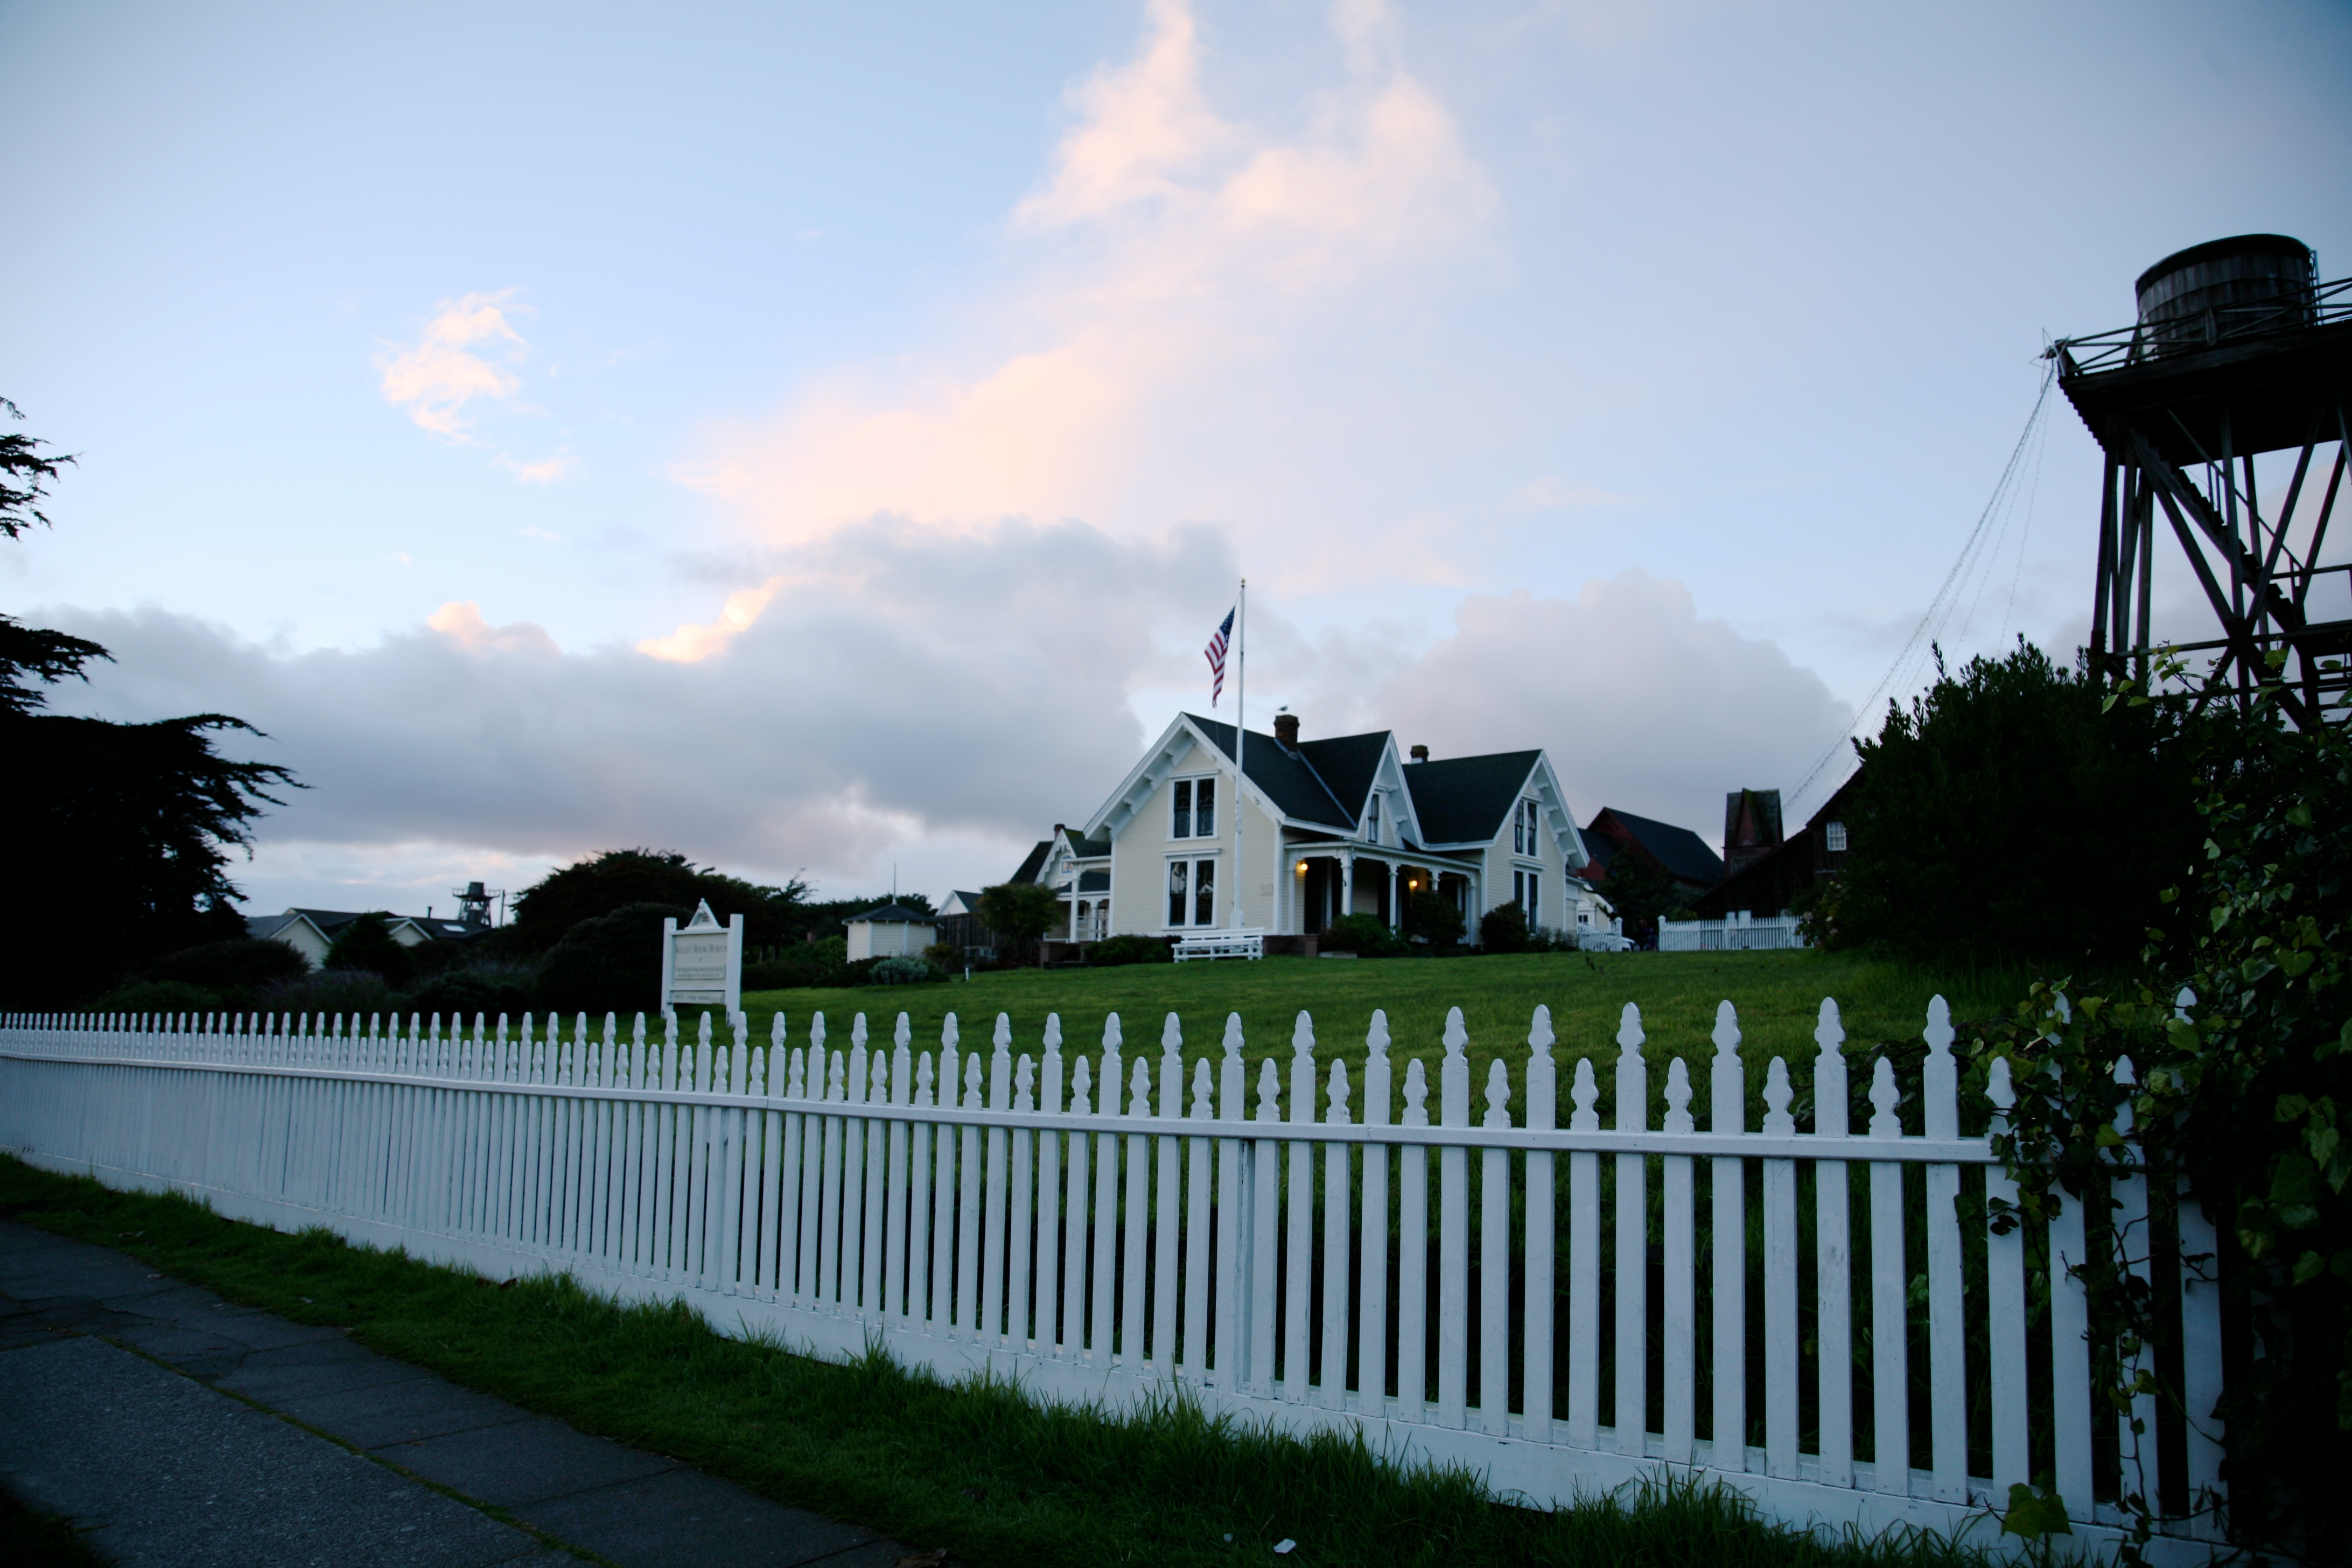 mendocino picket fence author lucke charlie